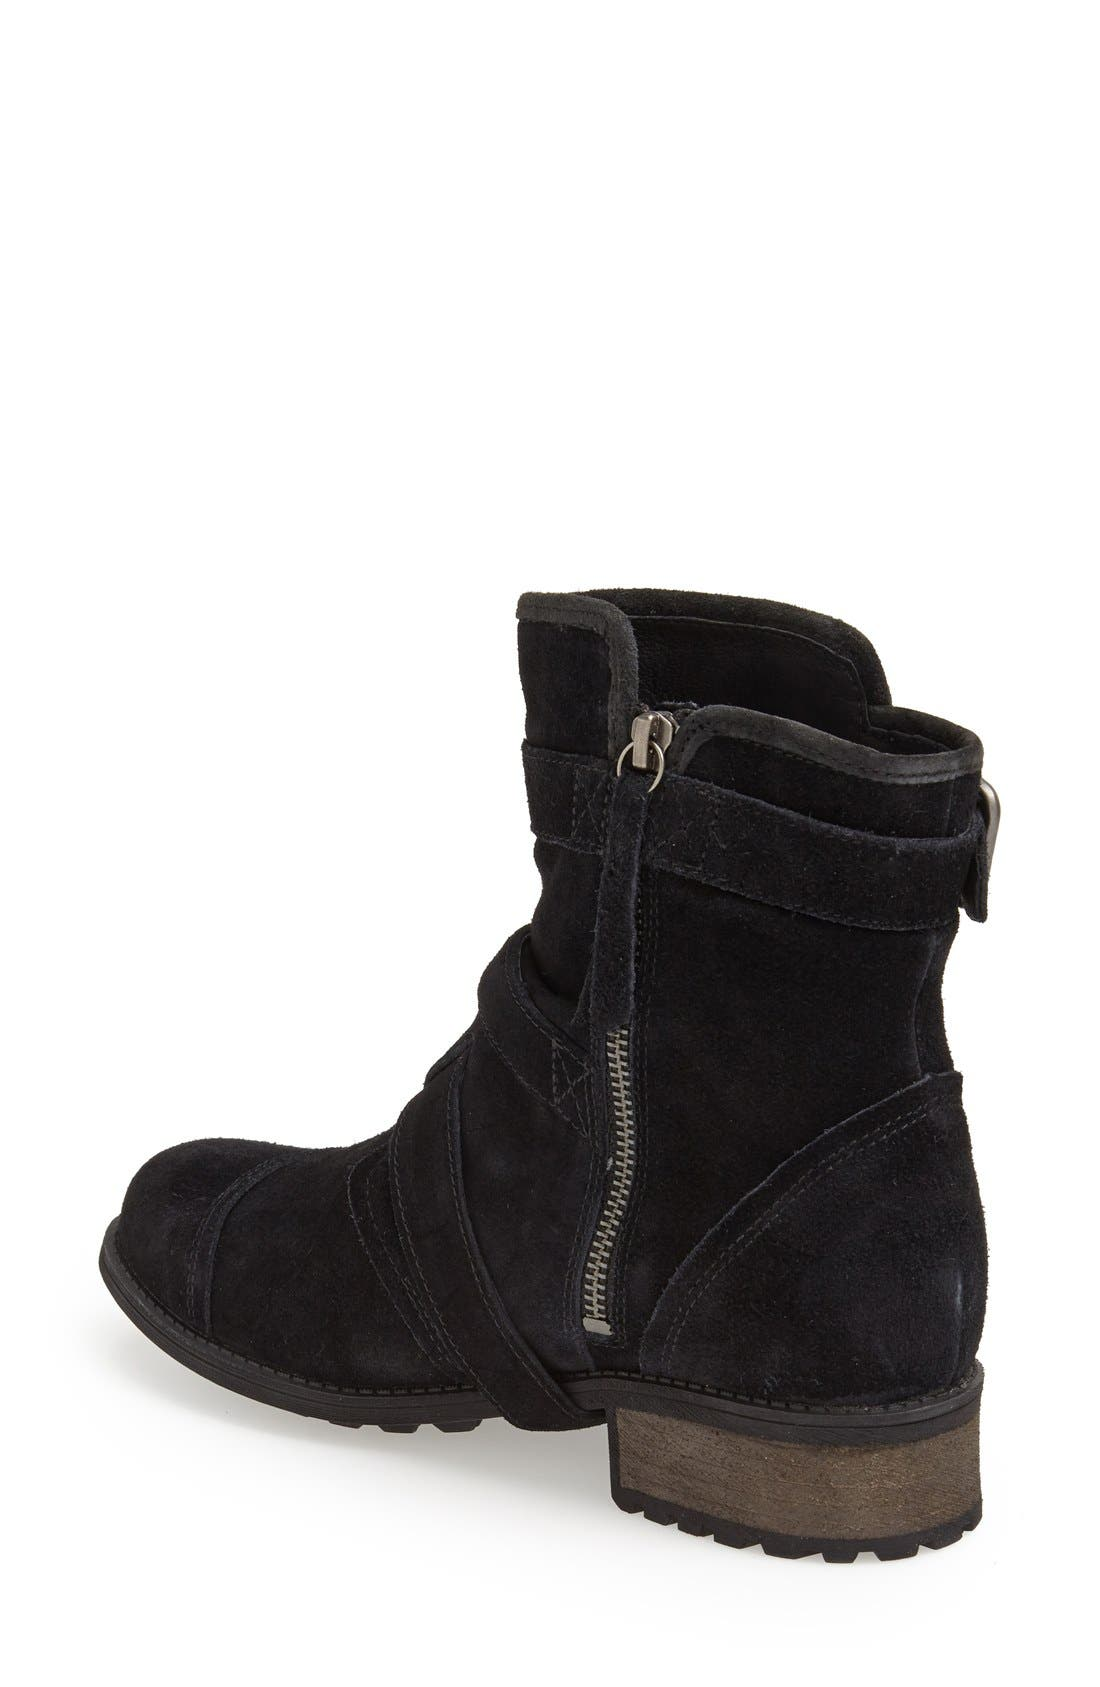 Alternate Image 2  - UGG® Australia 'Finney' Suede Moto Boot (Women)